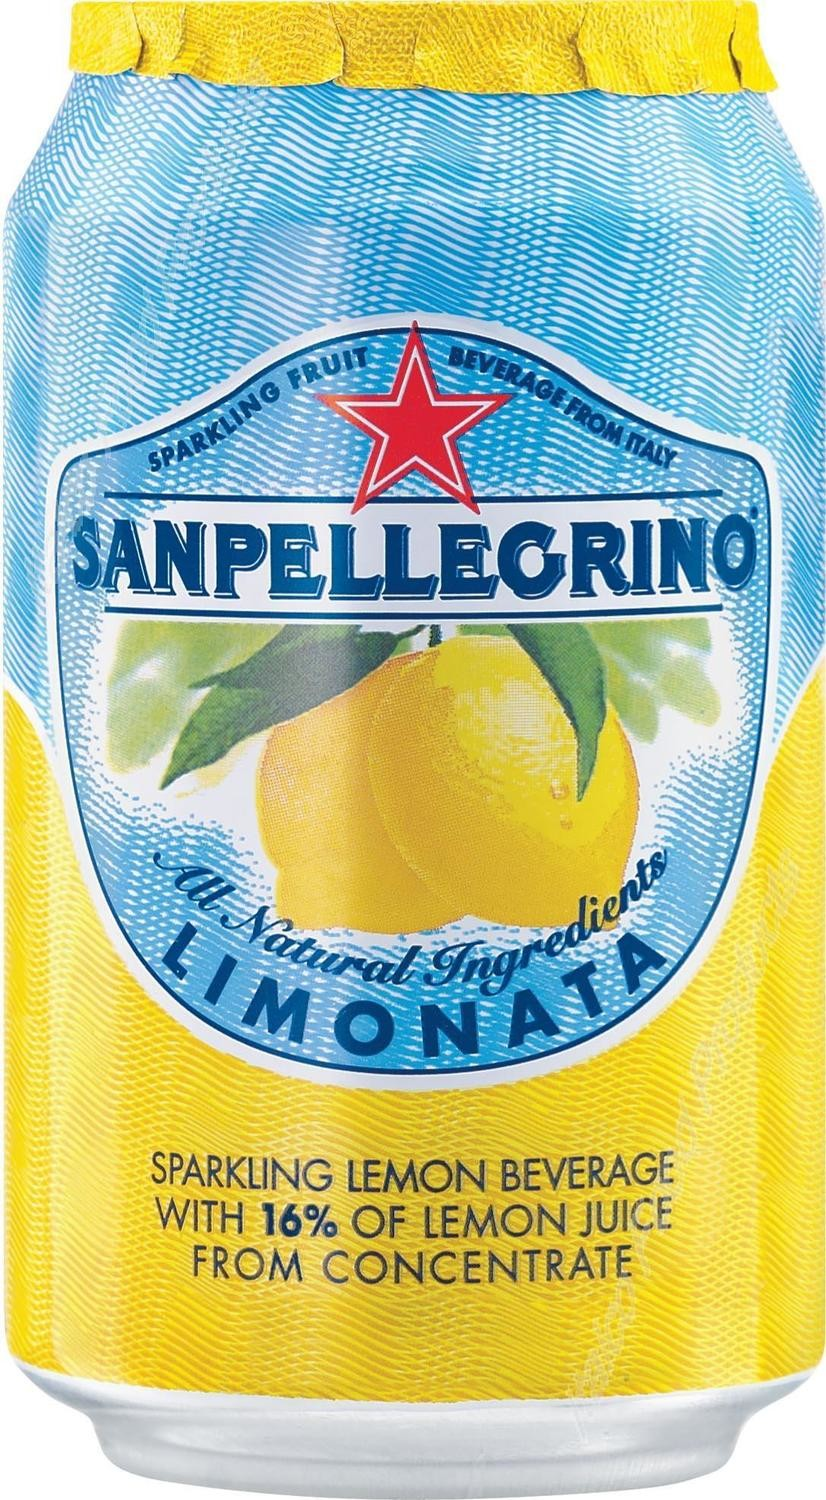 San Pellegrino 24/11.15 oz. can Limonata (Lemon)